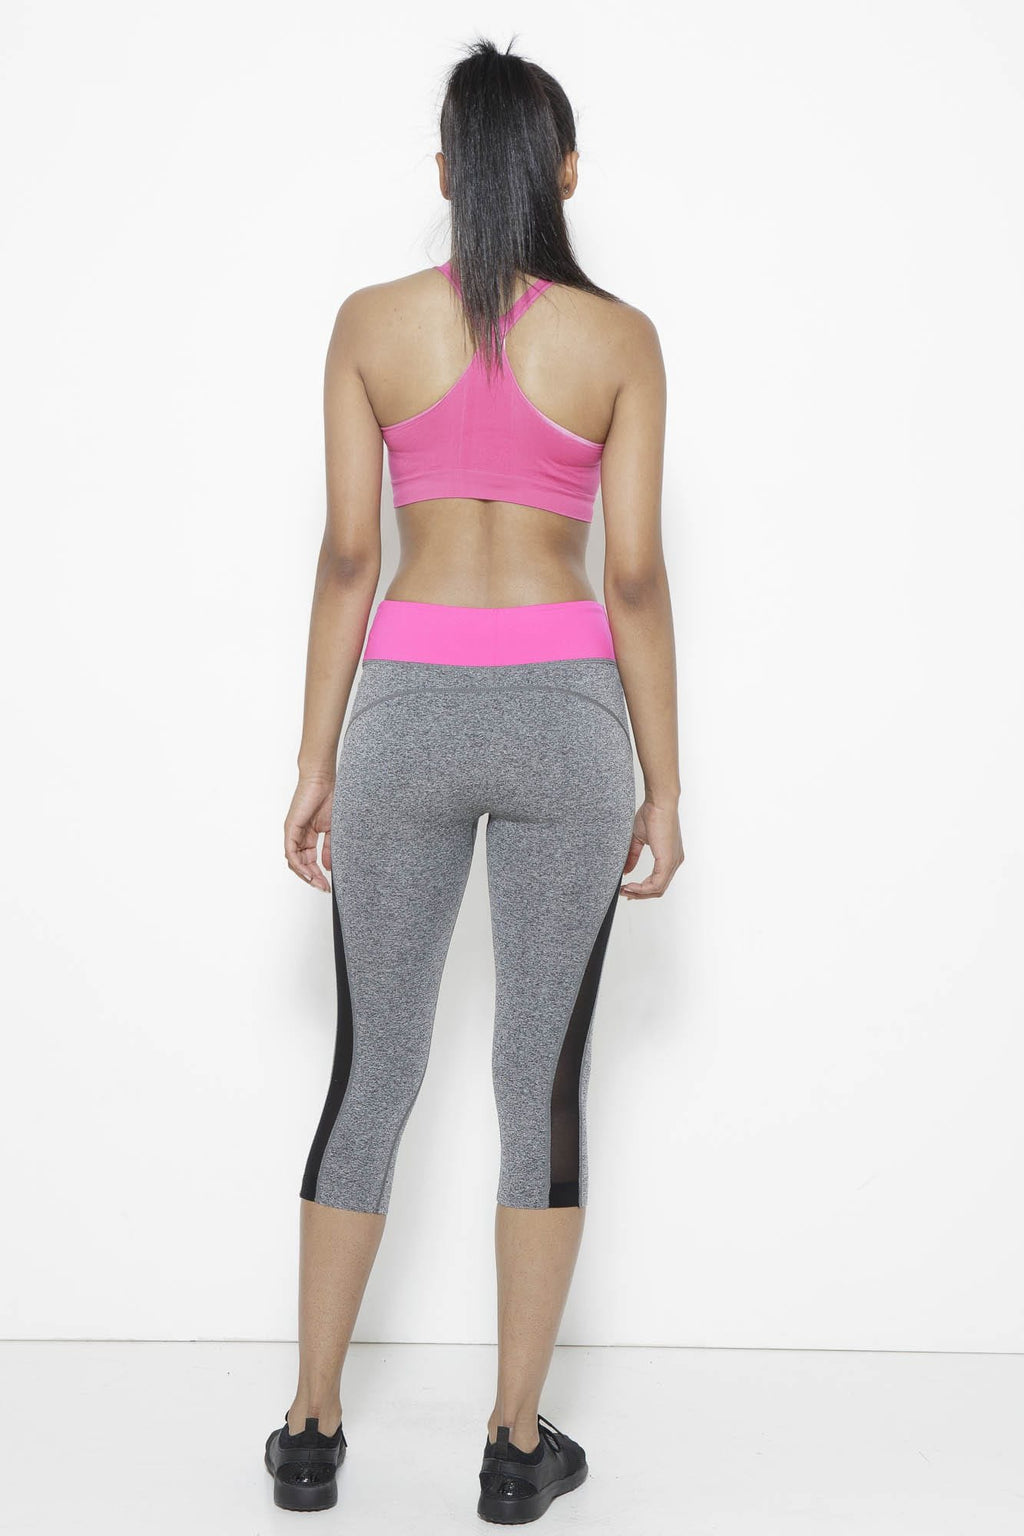 Shear Sighted Capris- Fuchsia/Grey Clothing Fair Shade